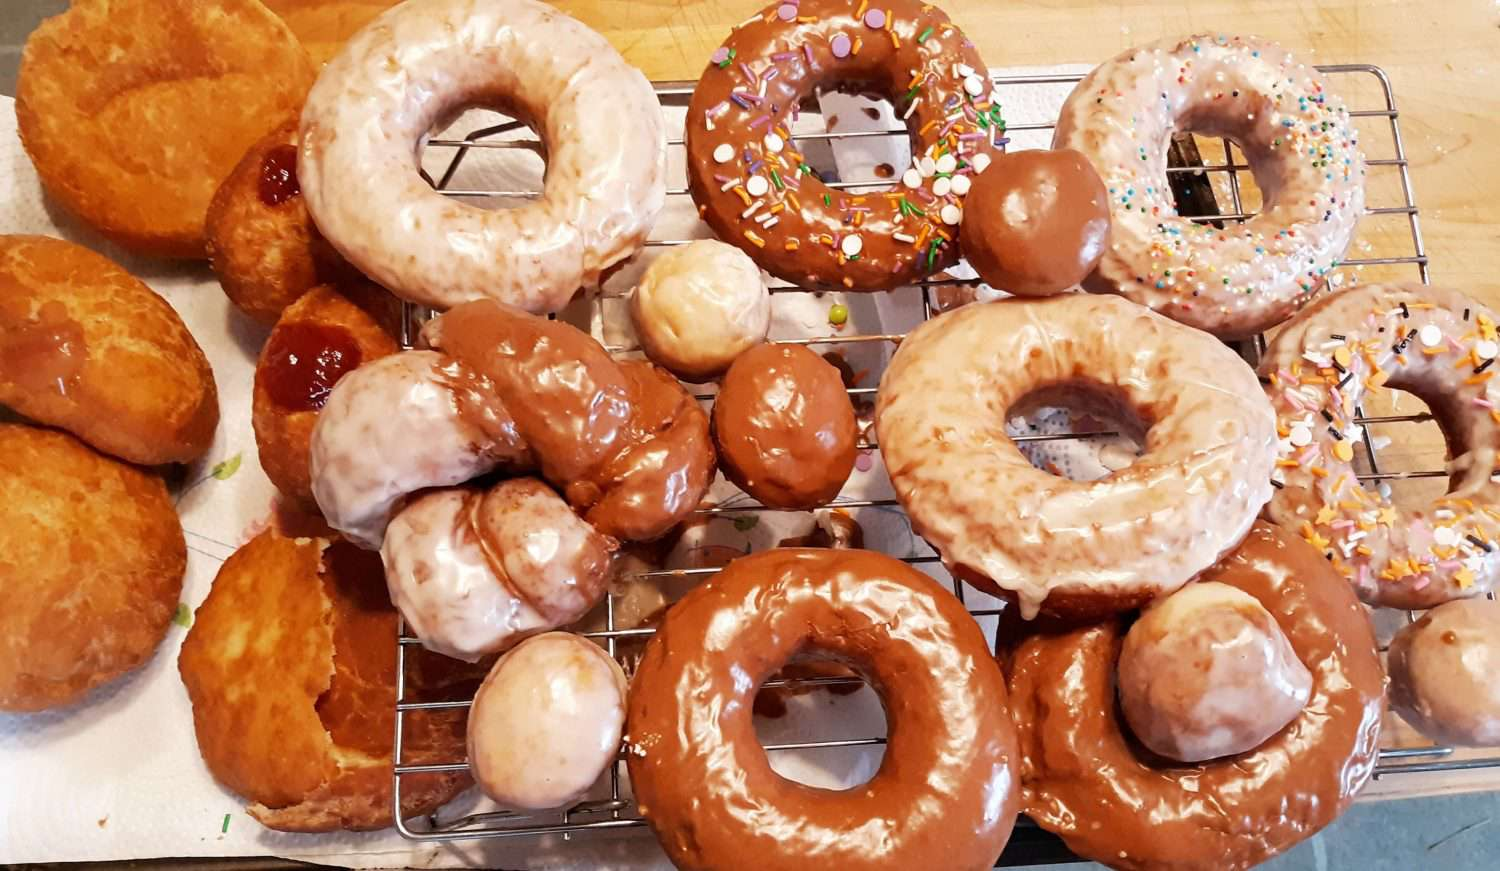 Pile of delicious-looking donuts